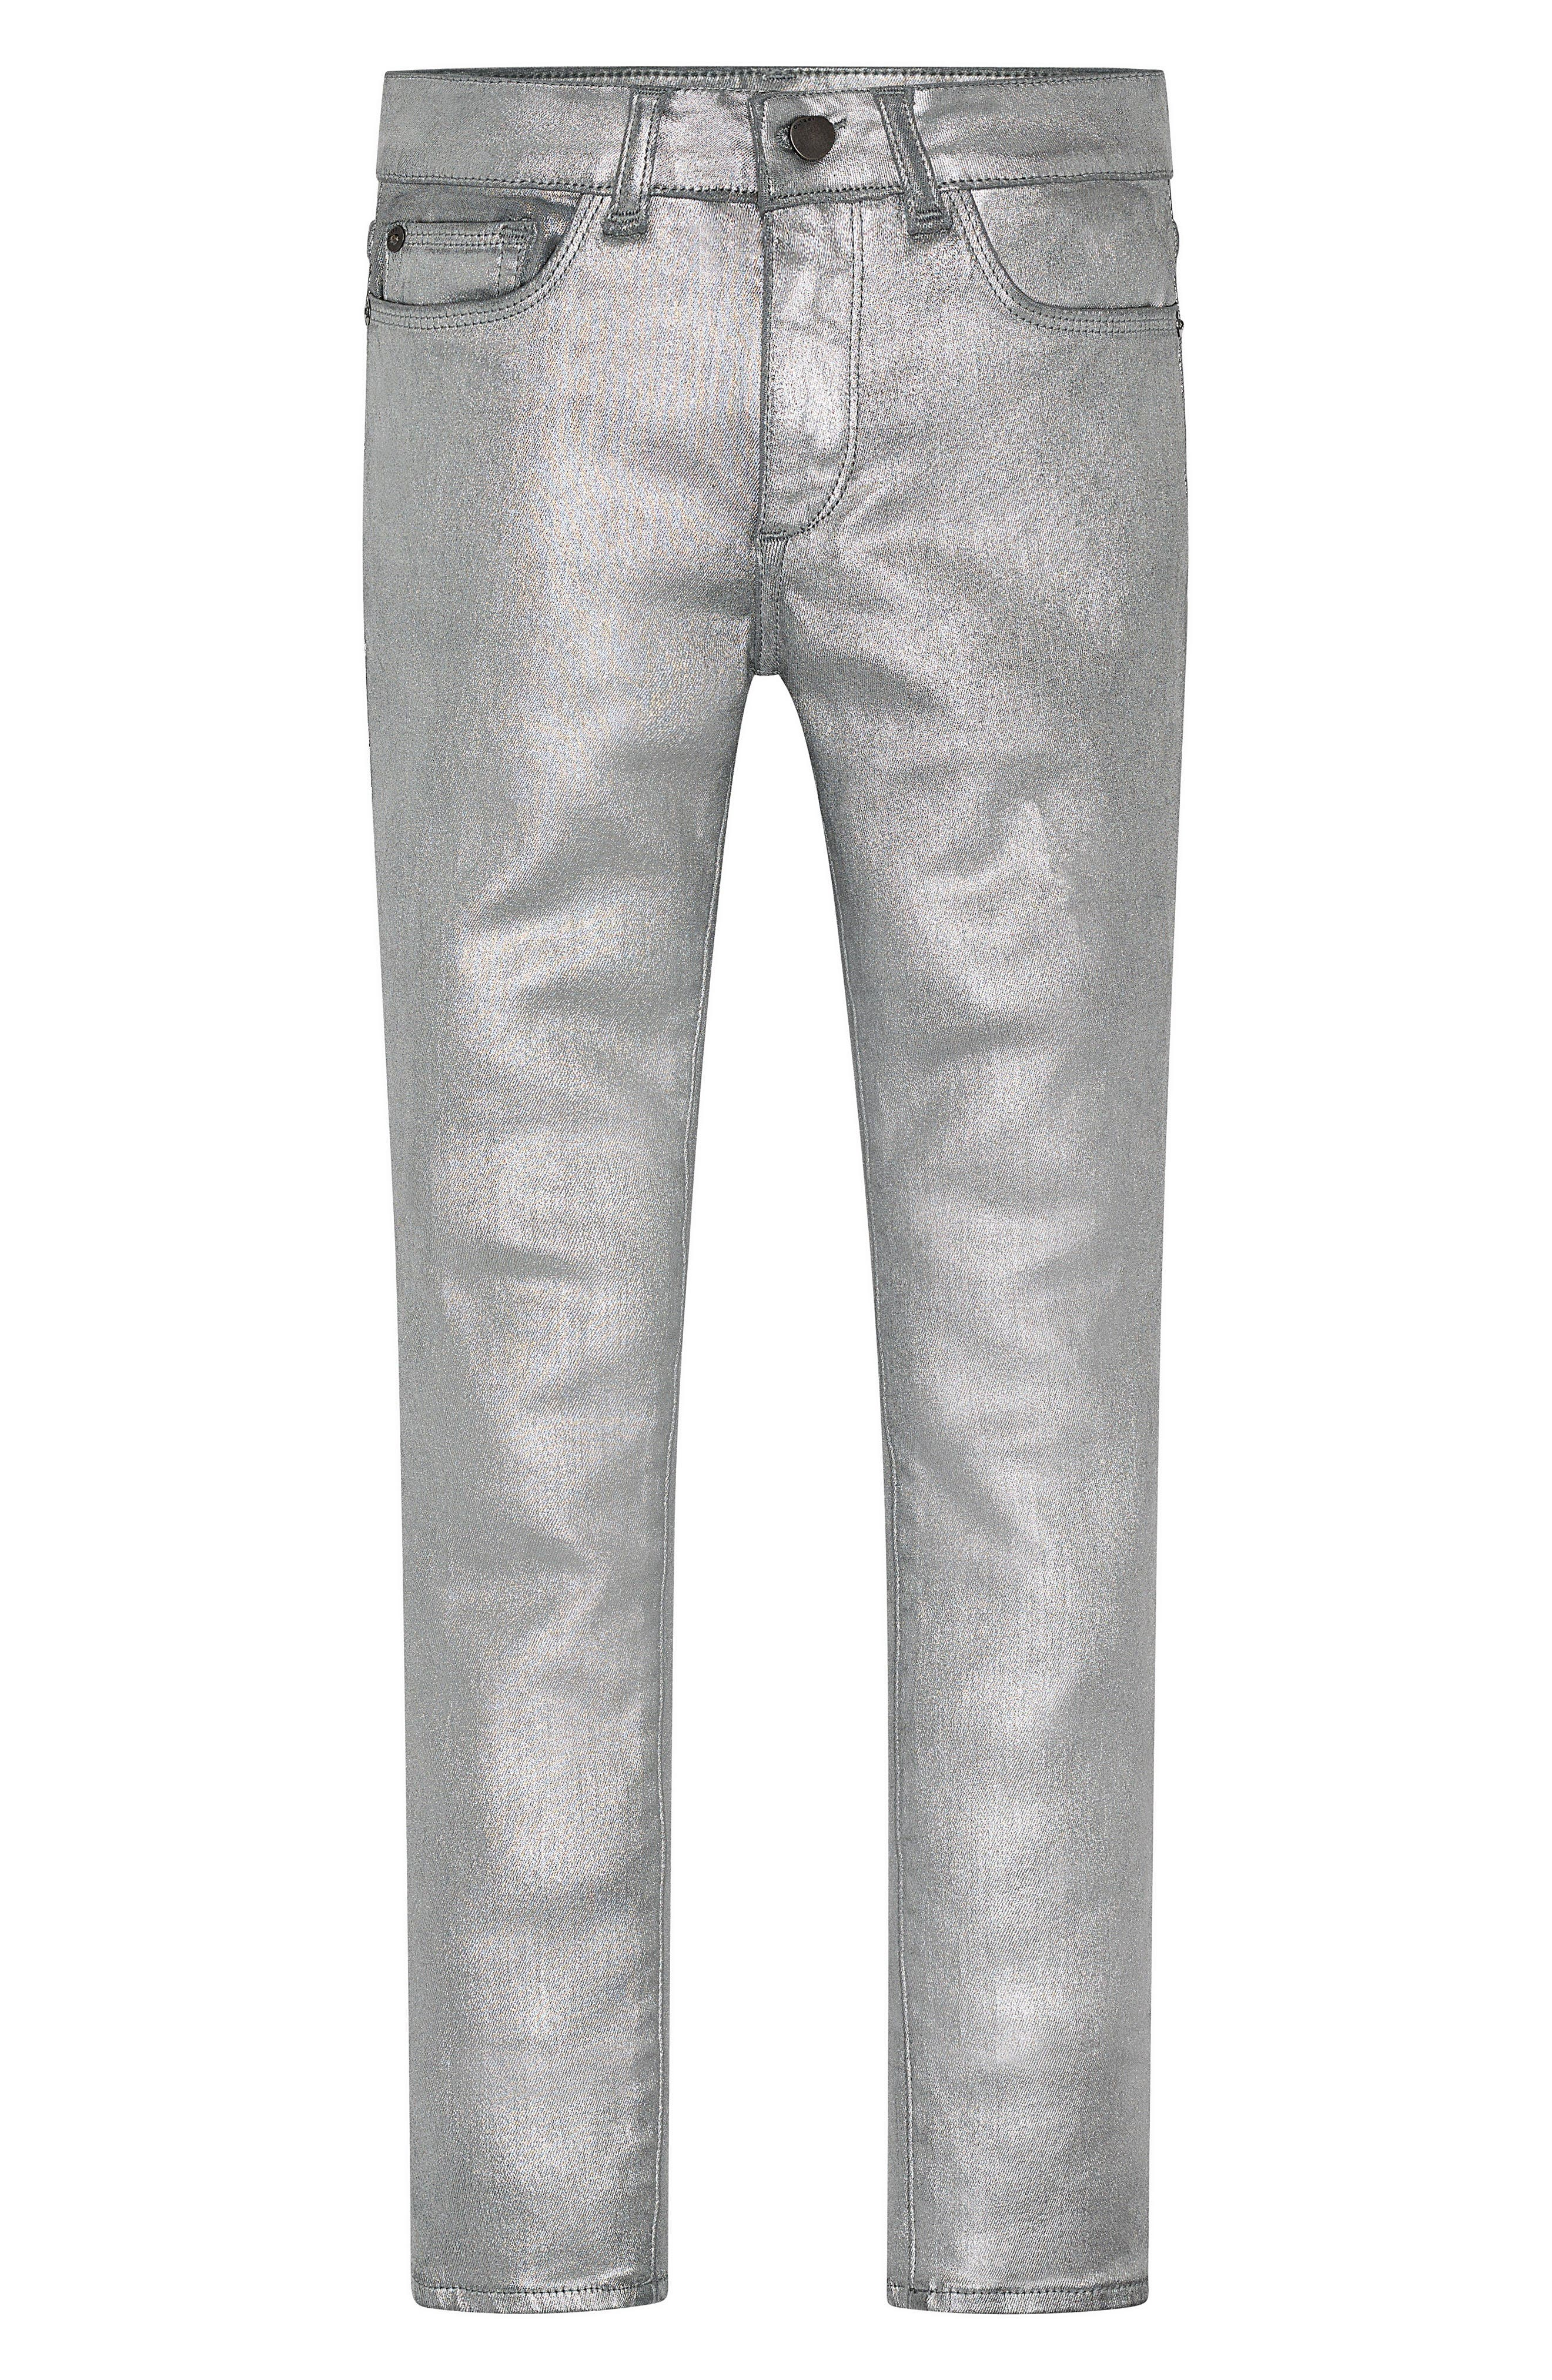 Chloe Coated Skinny Jeans,                         Main,                         color, 040